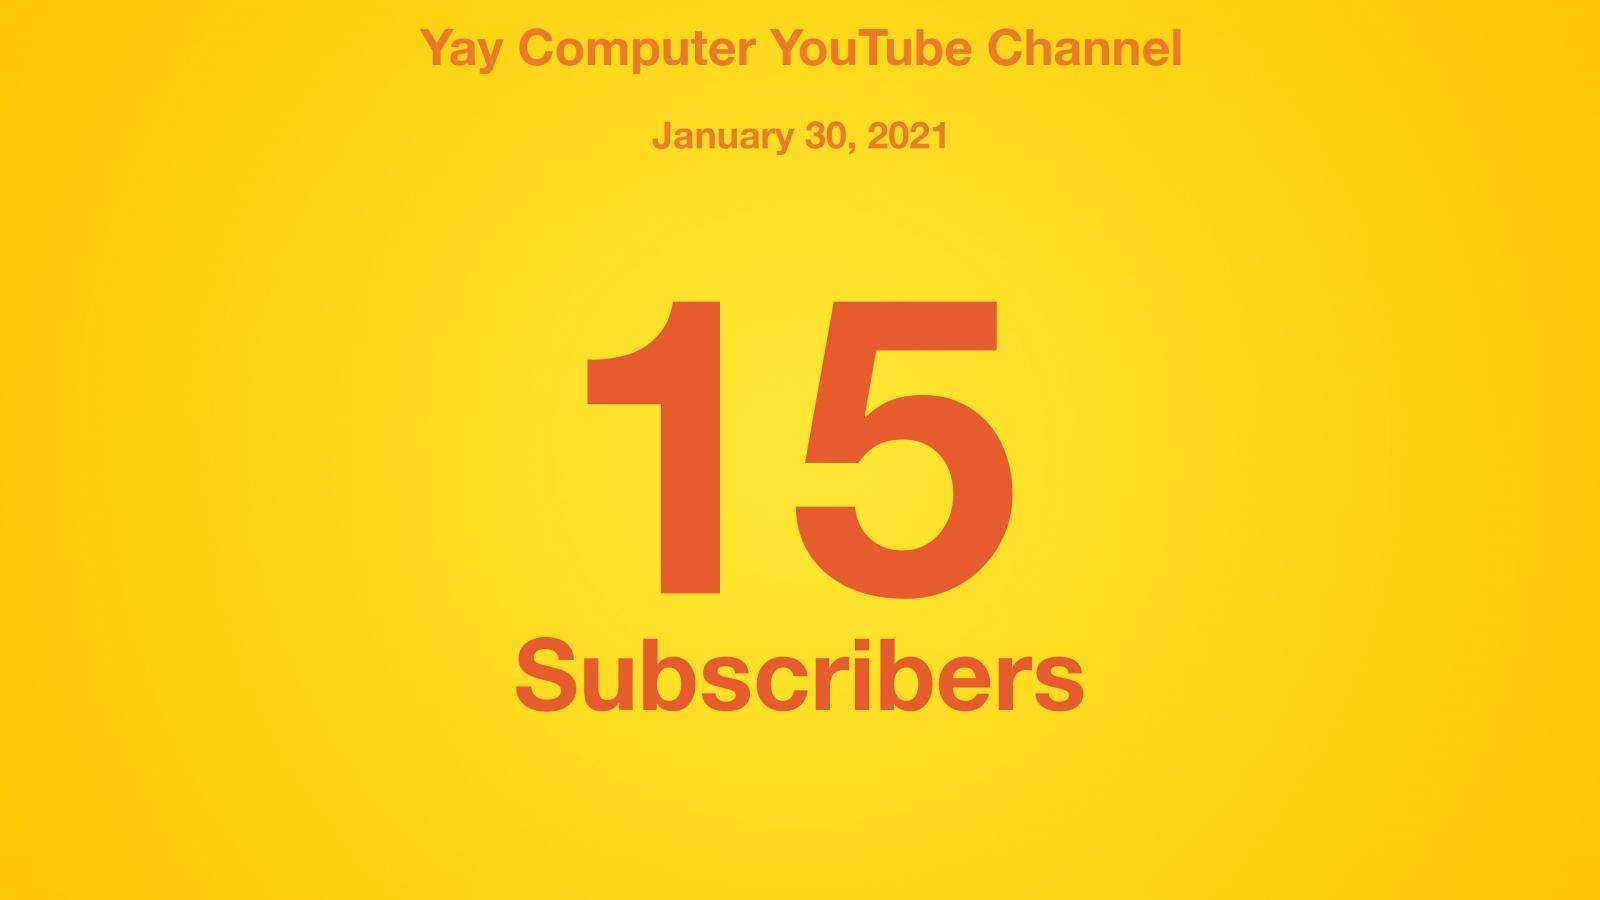 Yay Computer YouTube Channel, January 30, 2021, 15 Subscribers